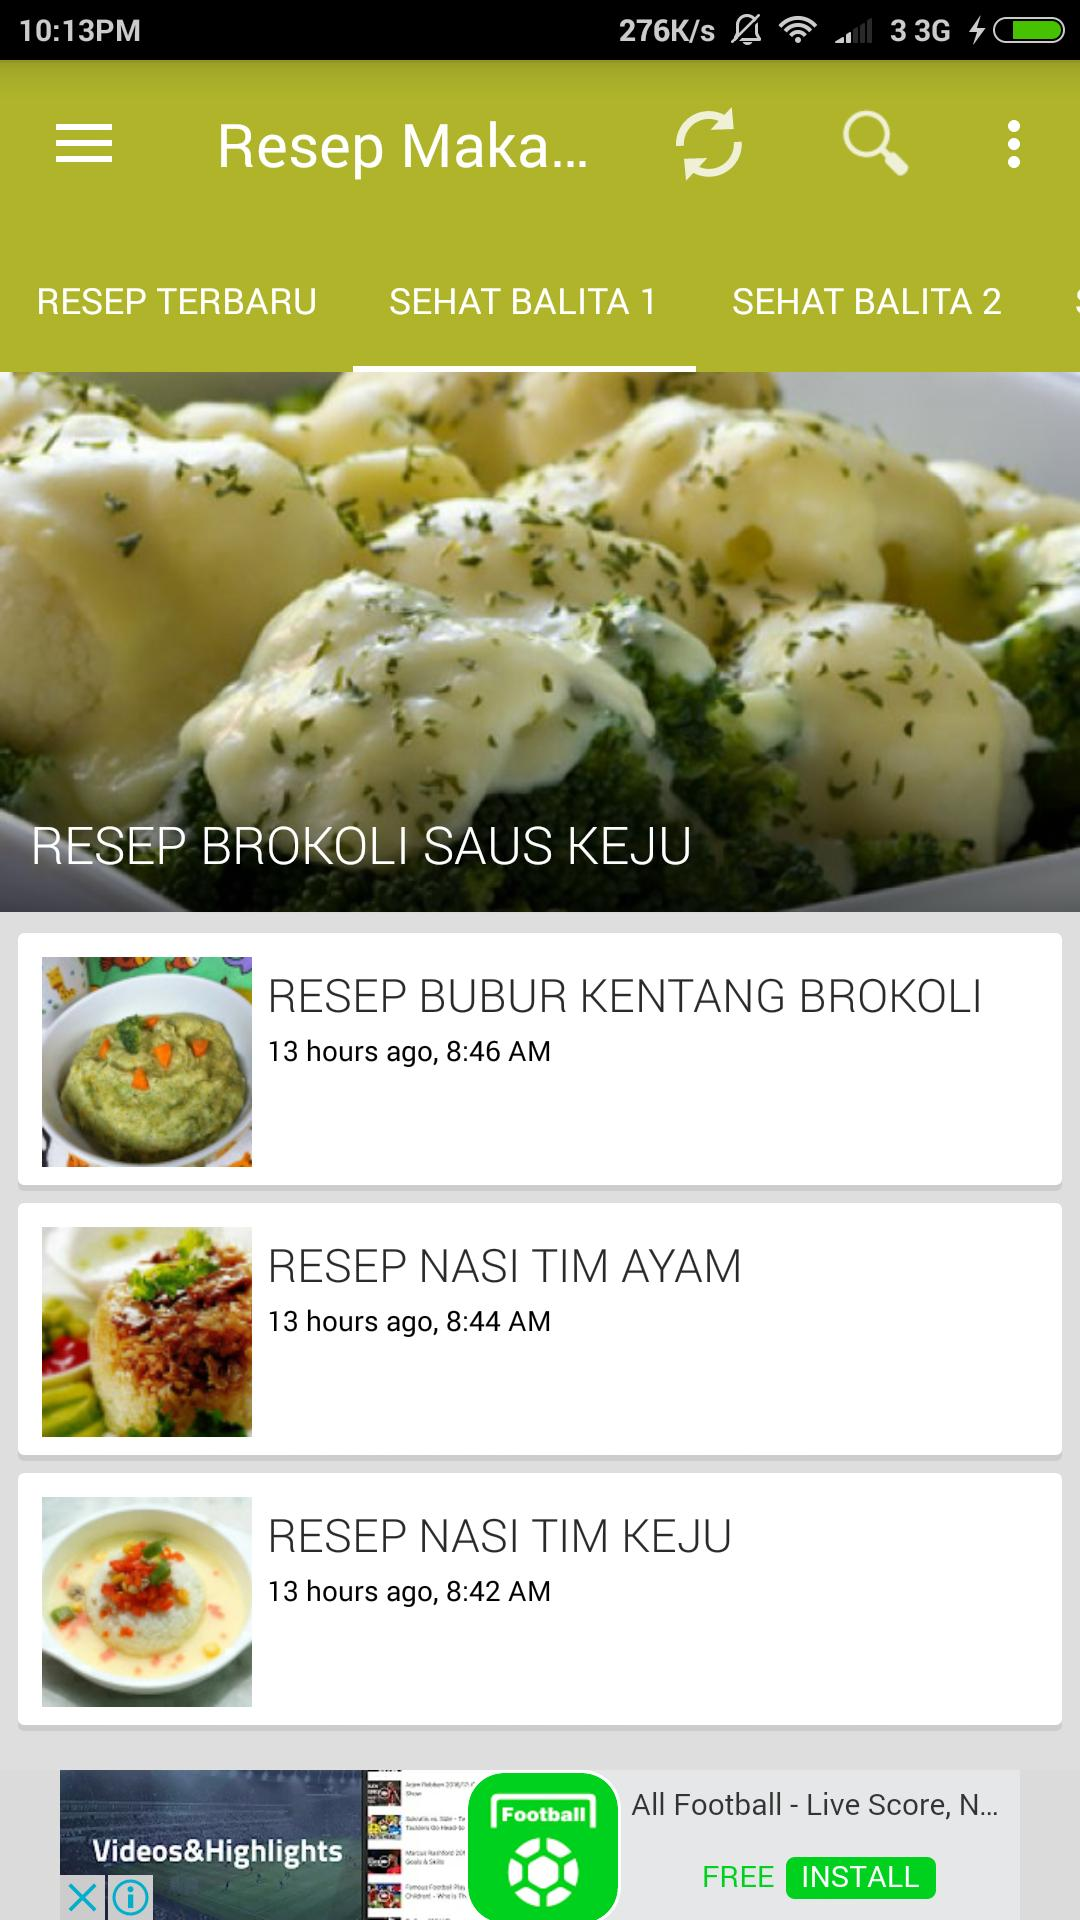 Resep Makanan For Android Apk Download